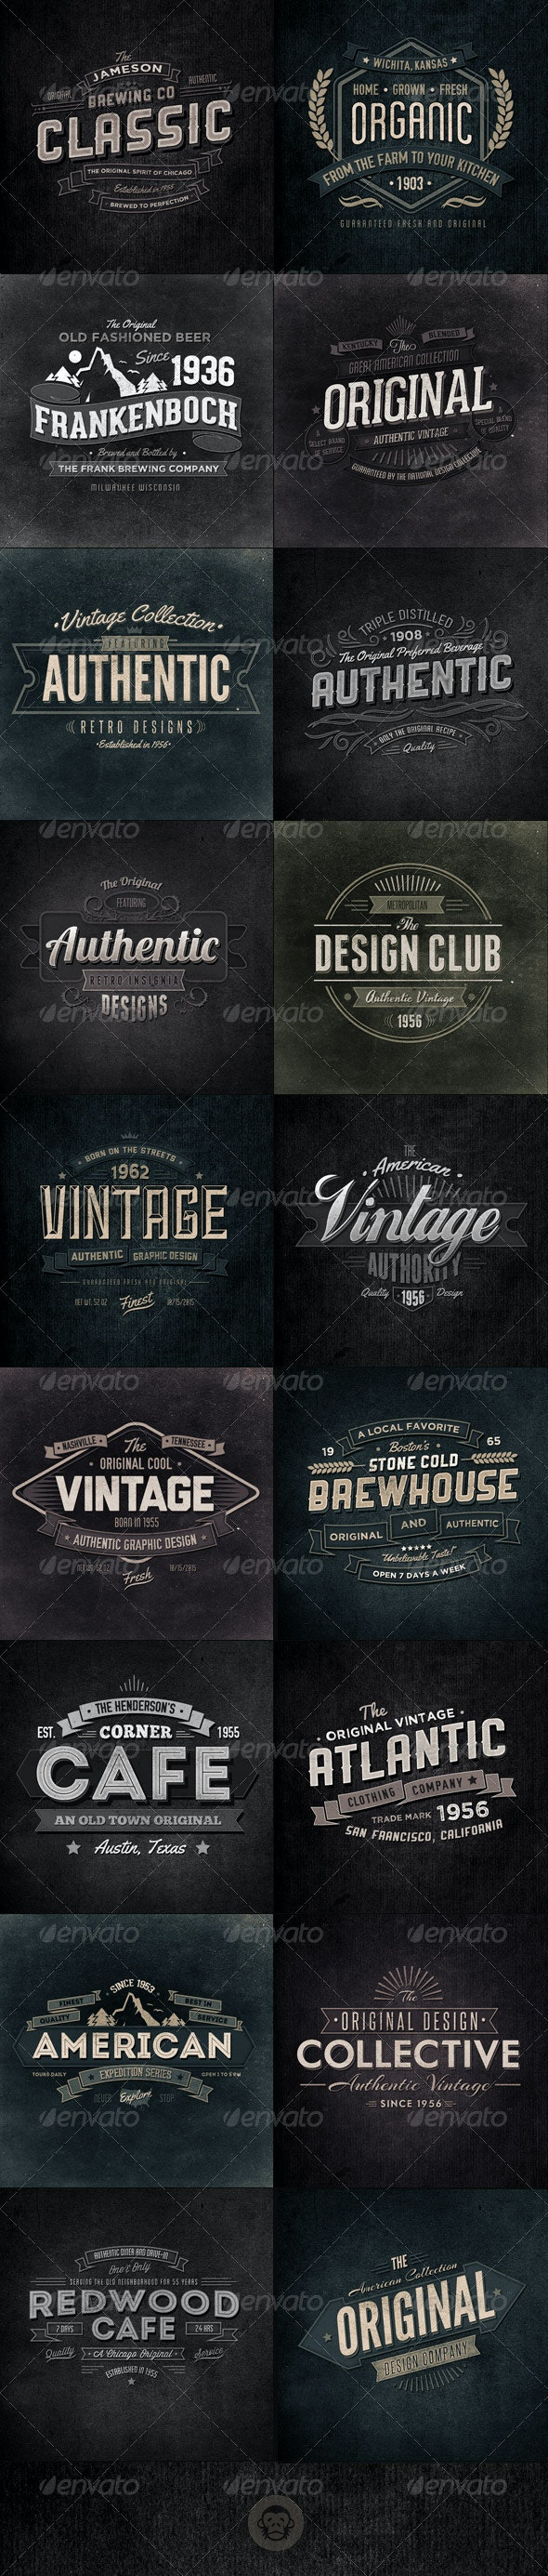 18 Retro Typographic Insignia and Badges Bundle - Badges & Stickers Web Elements